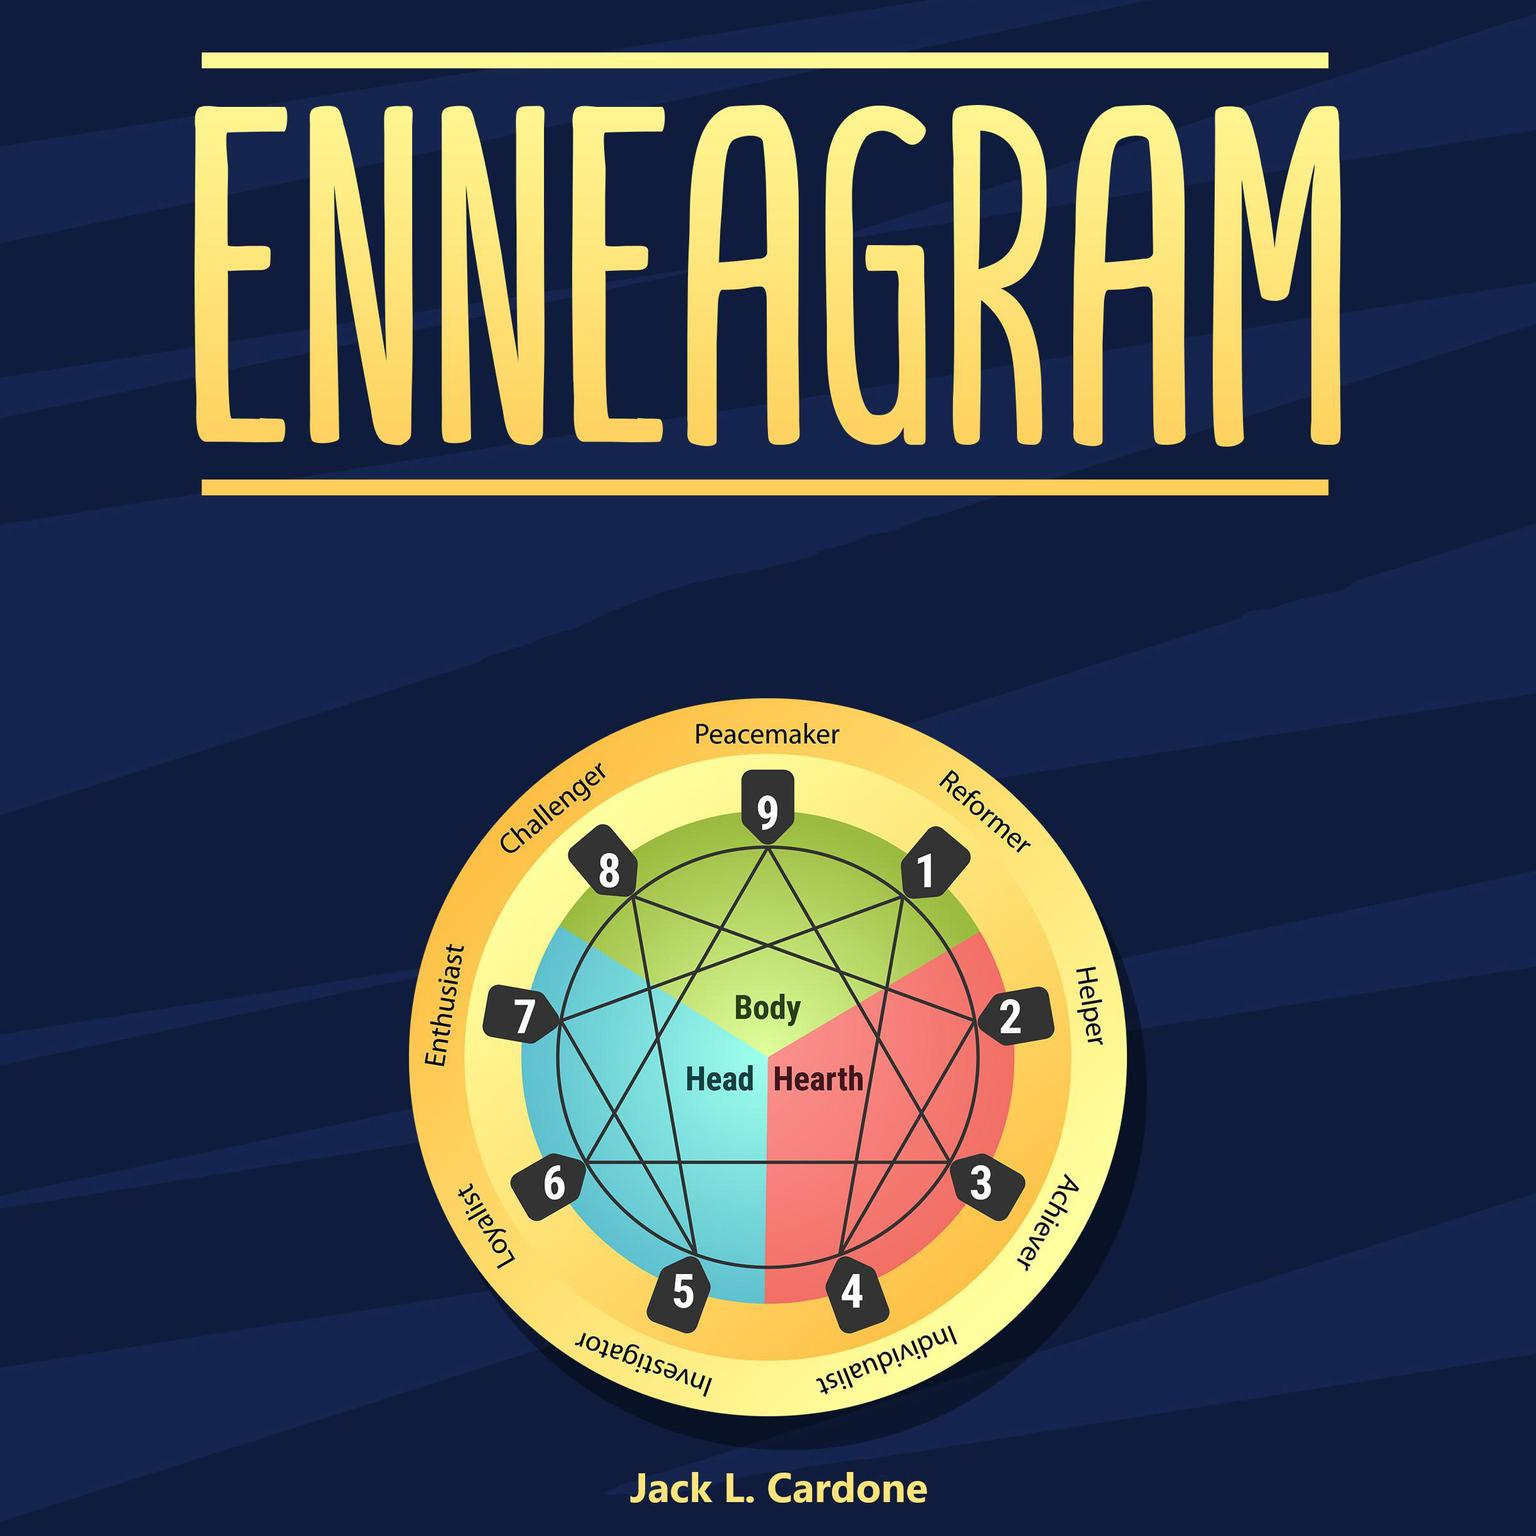 Printable Enneagram: A Complete Guide to Test and Discover 9 Personality Types, Develop Healthy Relationships, Grow Your Self-Awareness: A Complete Guide to Test and Discover 9 Personality Types, Develop Healthy Relationships, Grow Your Self-Awareness Audiobook Cover Art